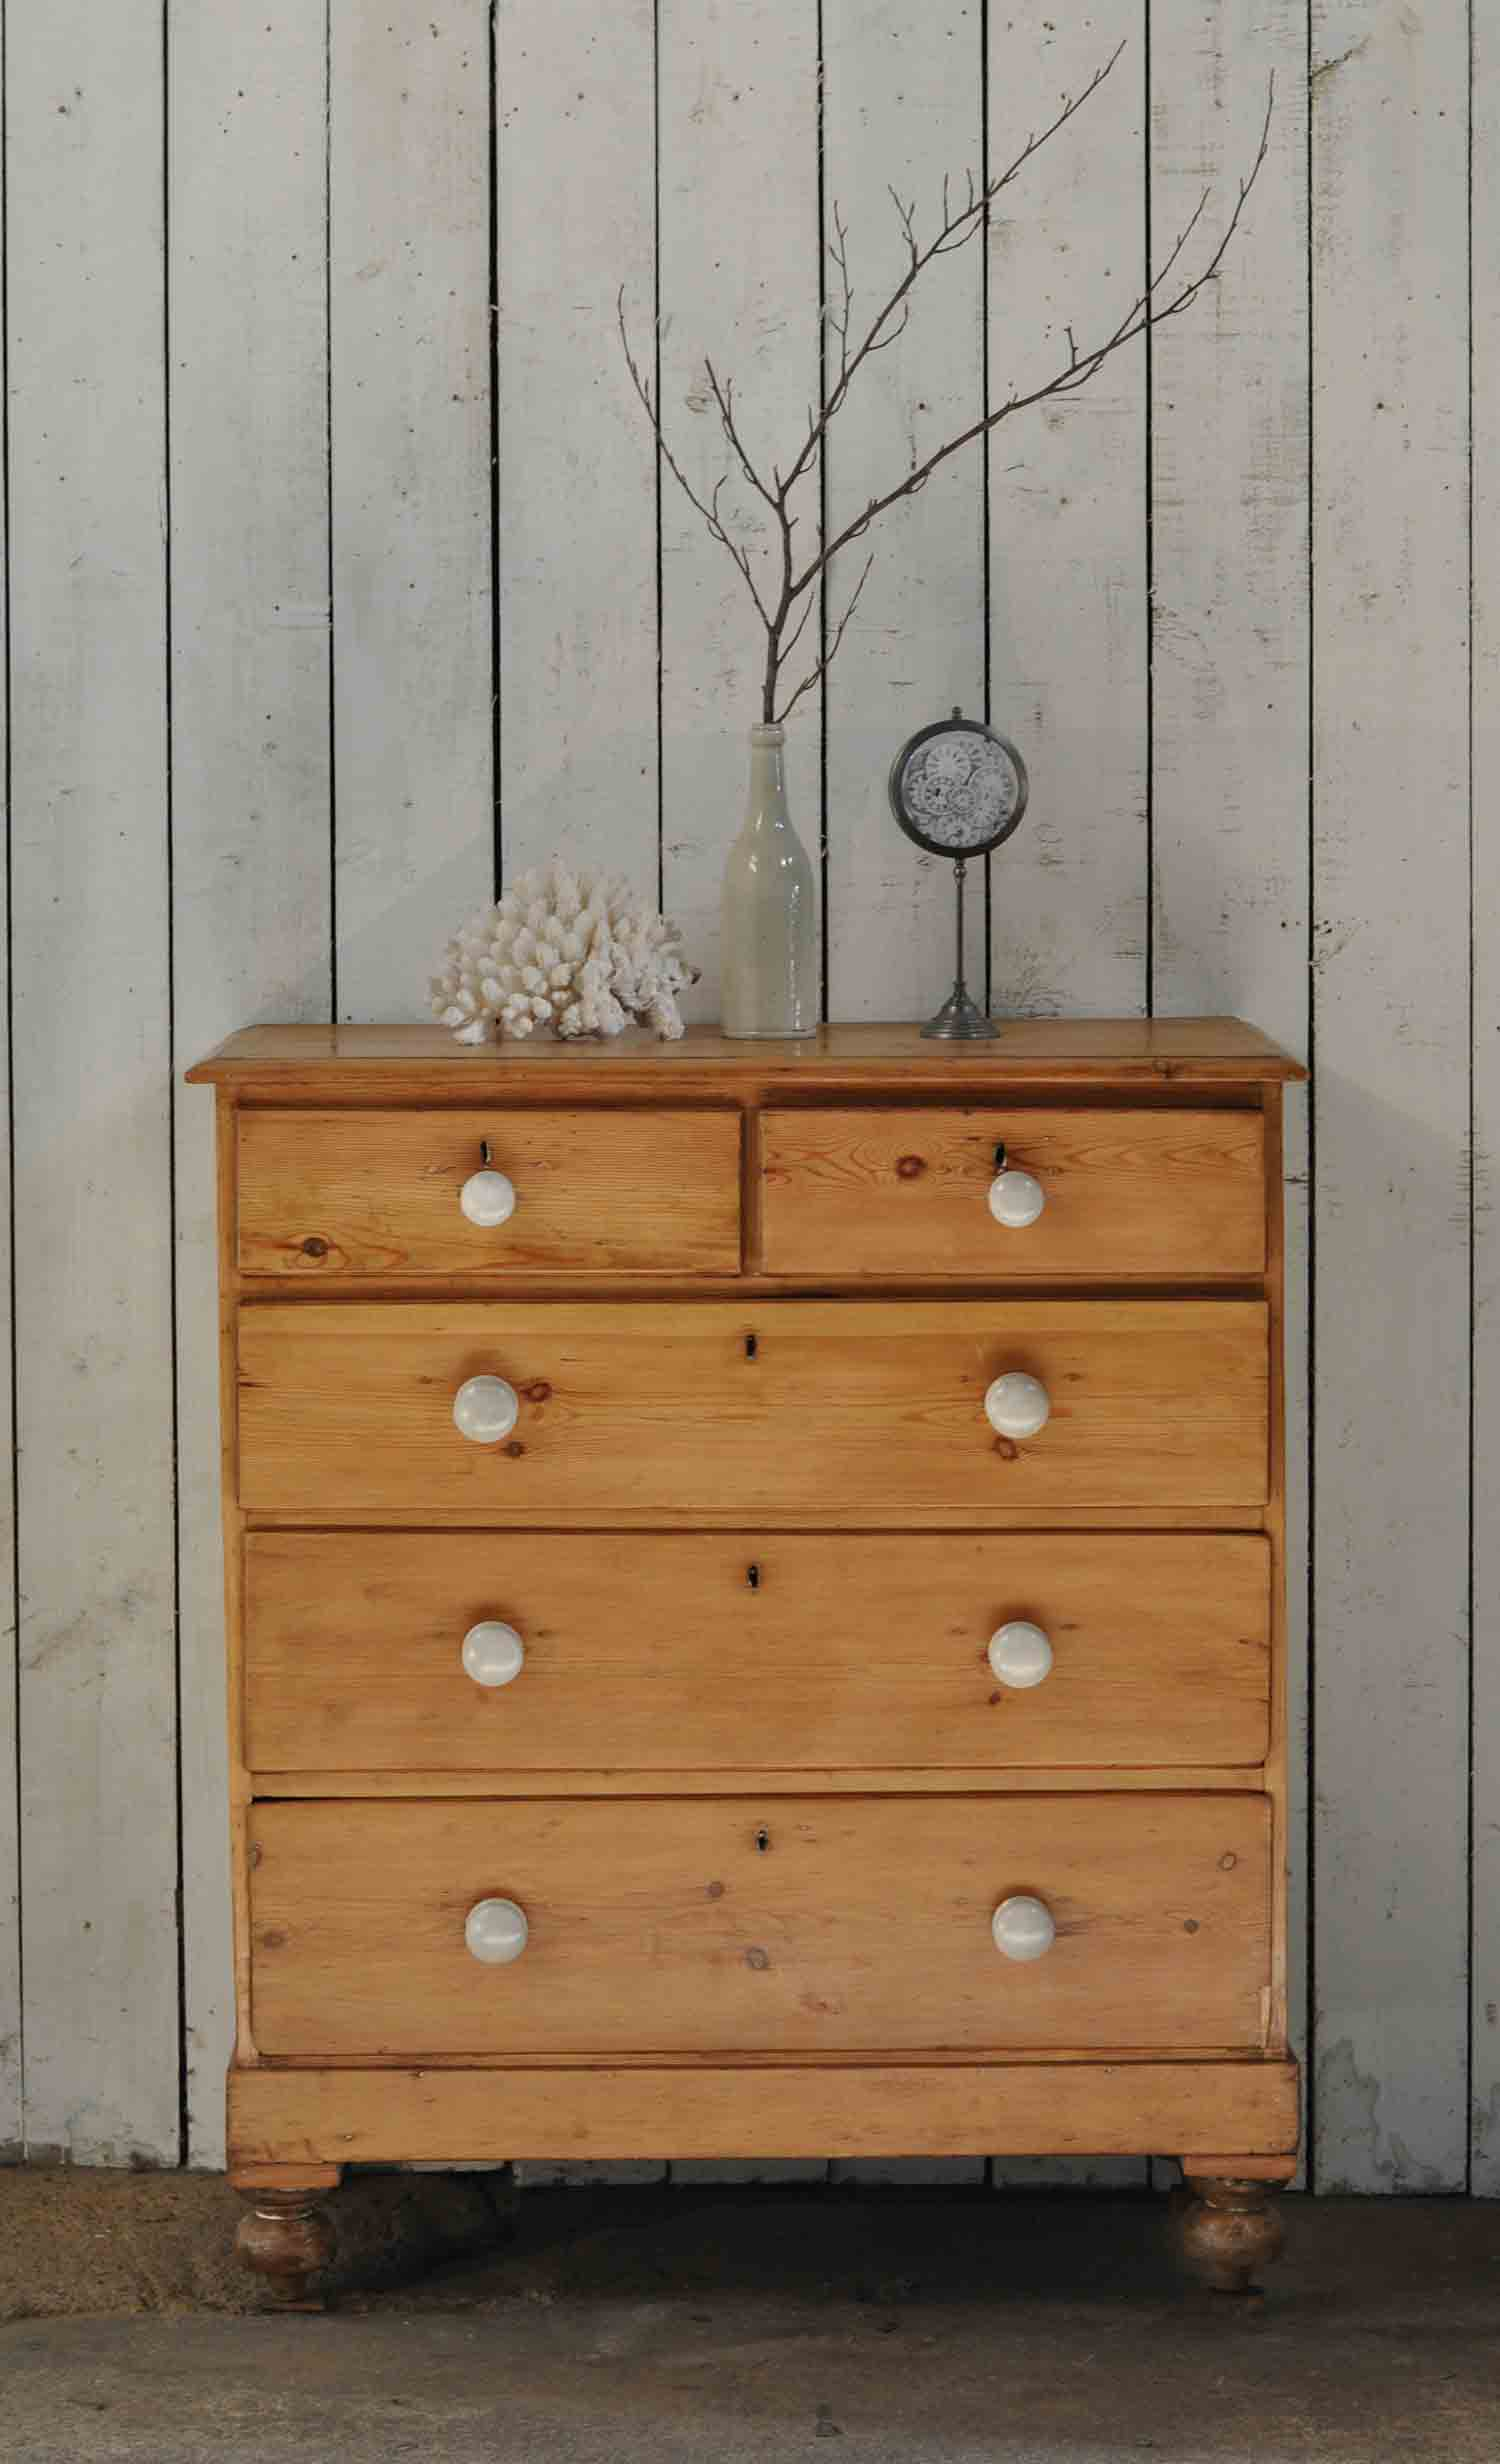 Excellent Antique Pine Chest of Drawers Linen Storage - Home Barn Vintage ZH39